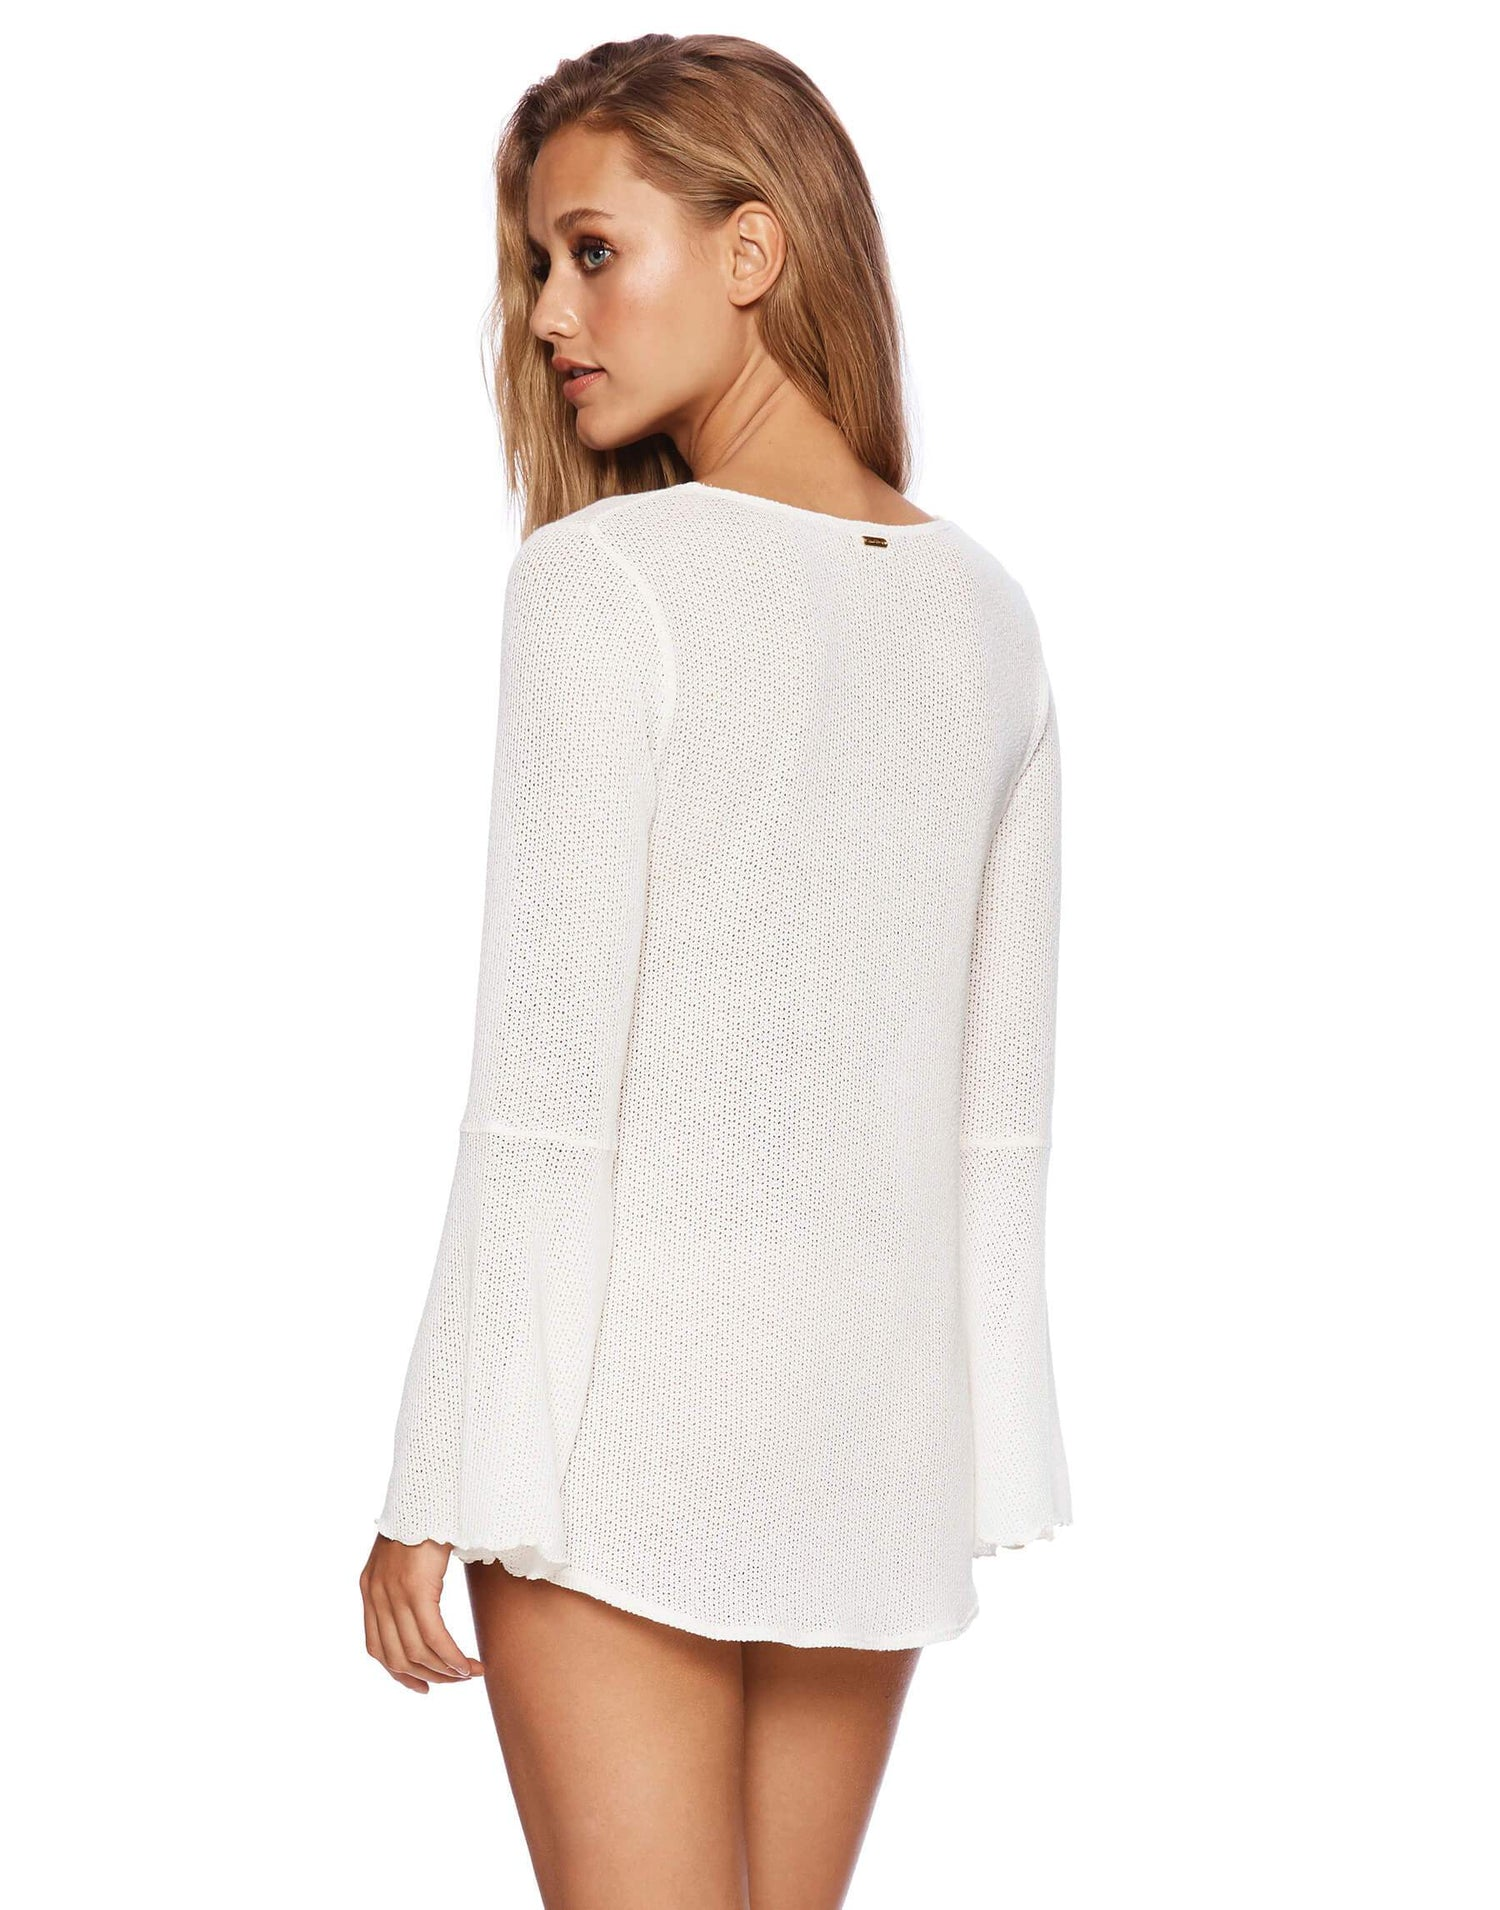 Annika Deep V-neck Top with Bell Sleeves - back view